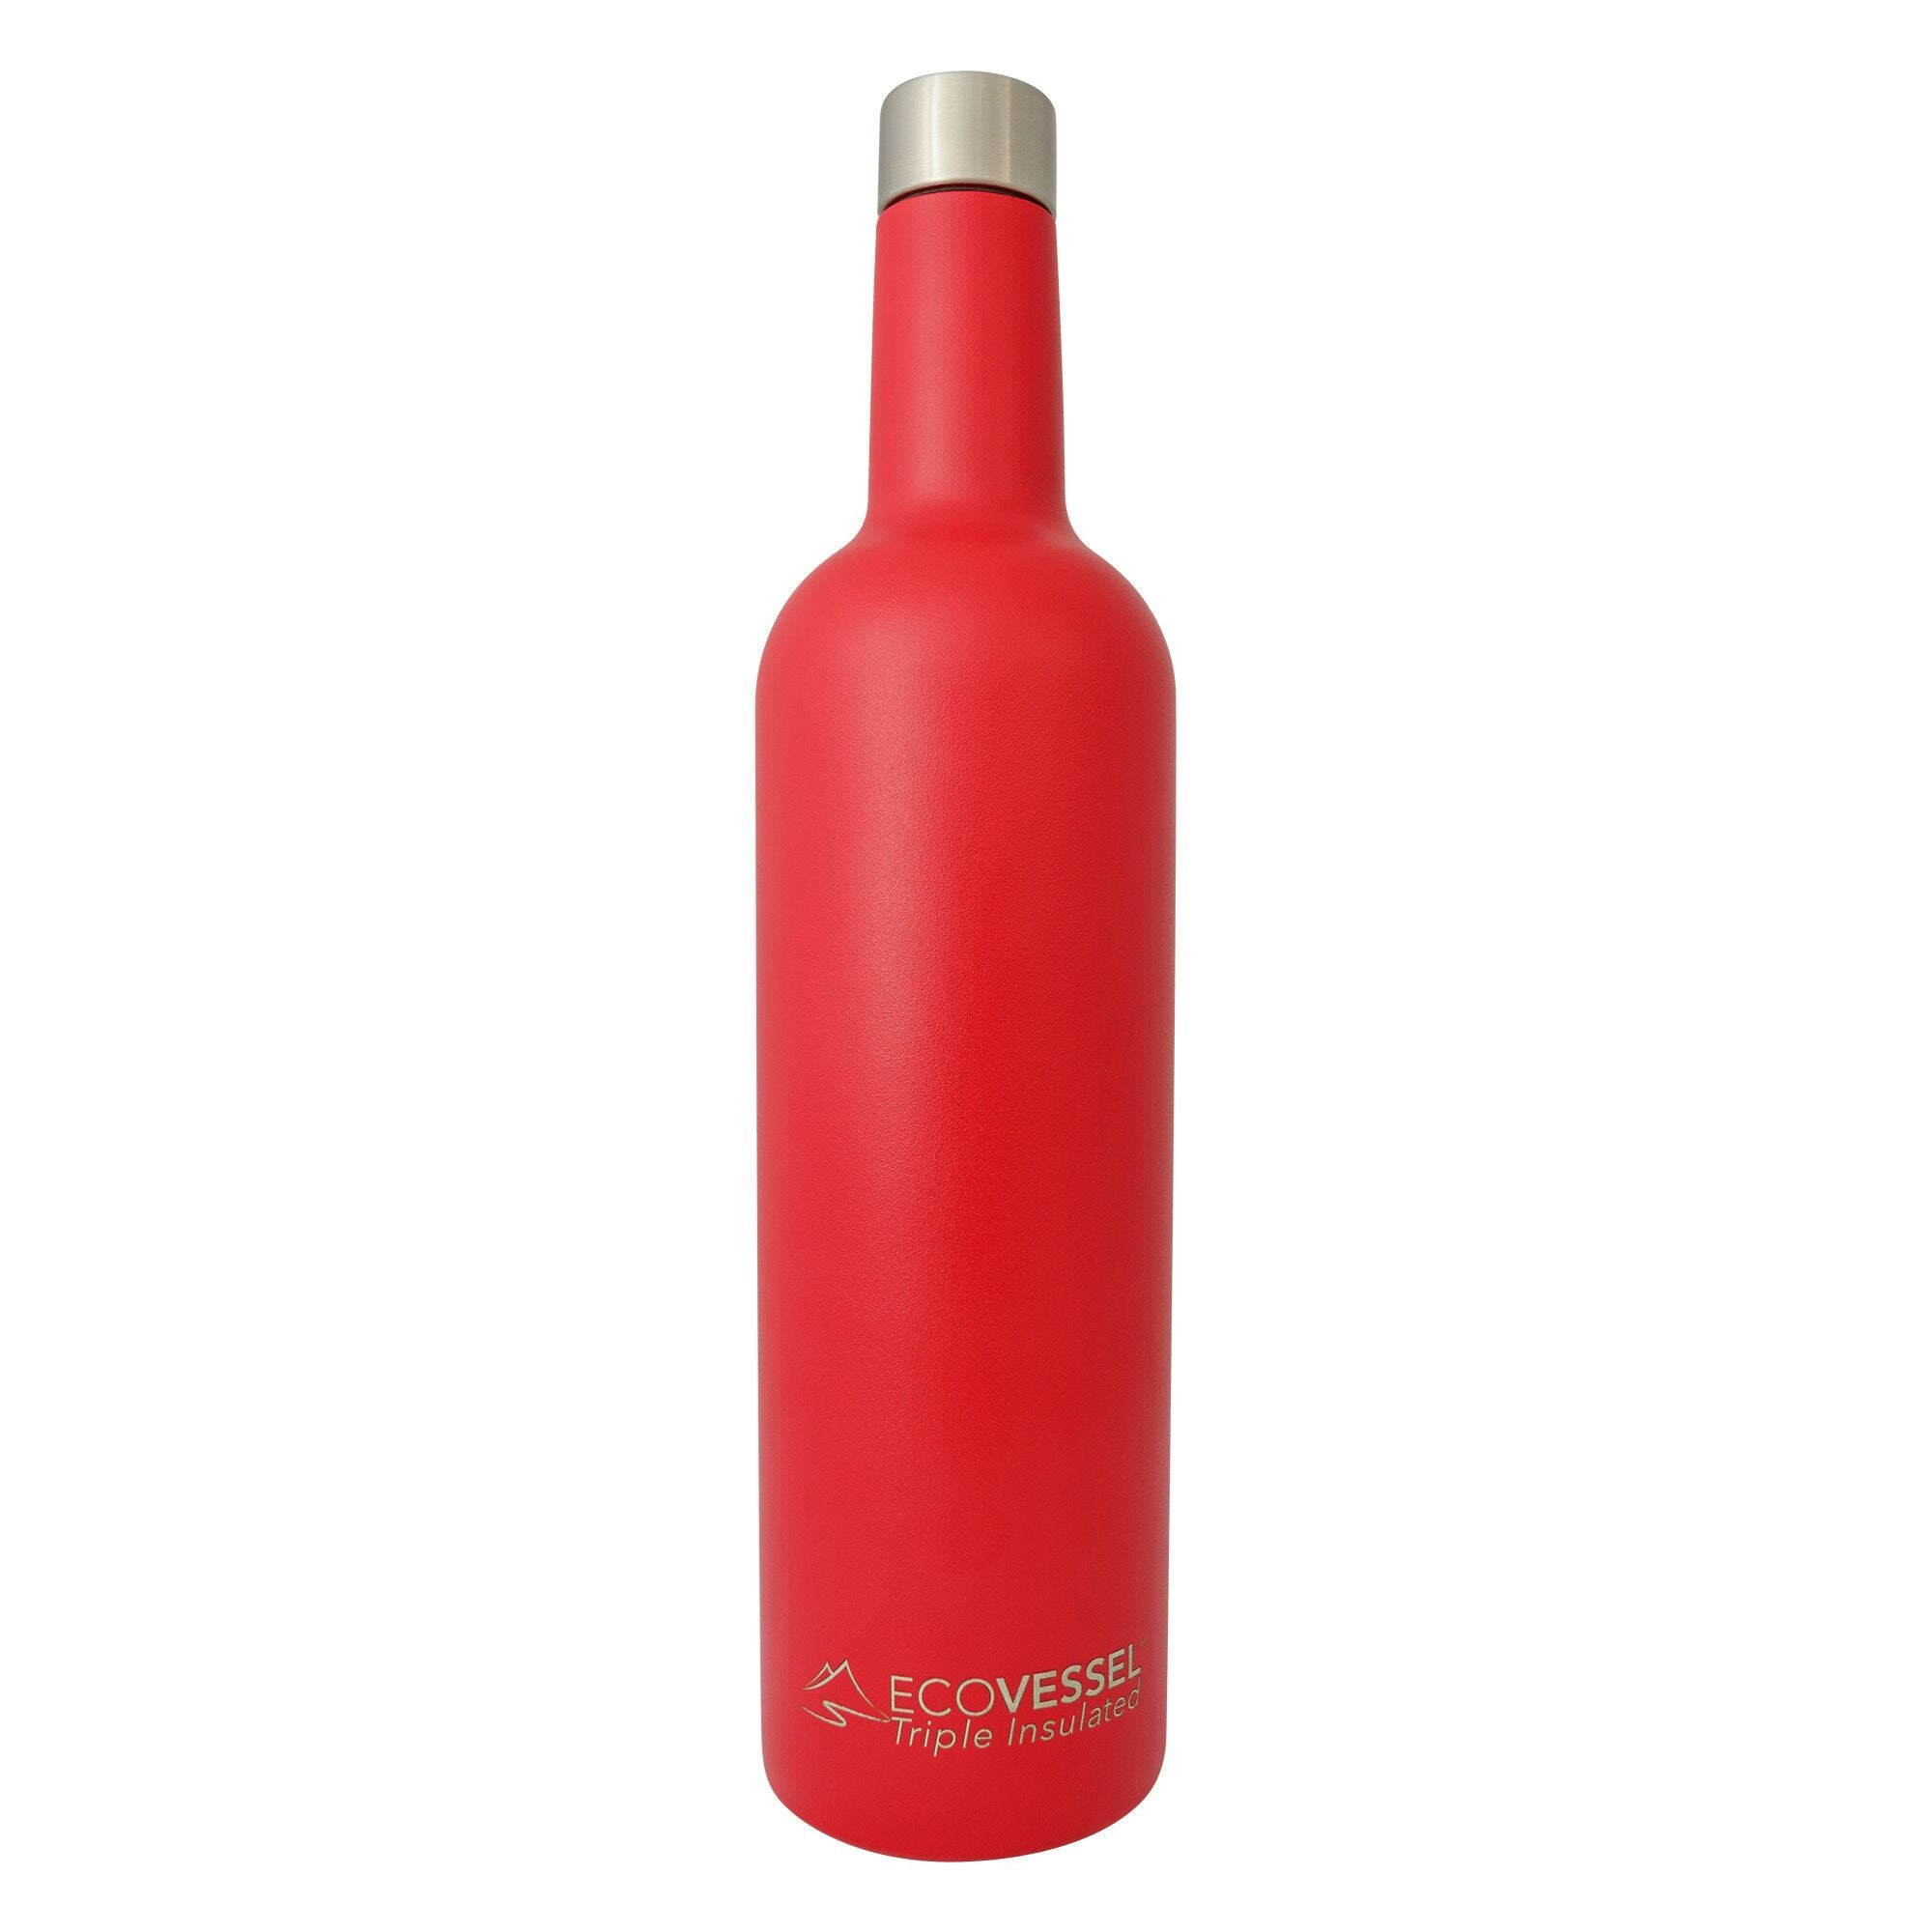 ecovessel vino wine bottle